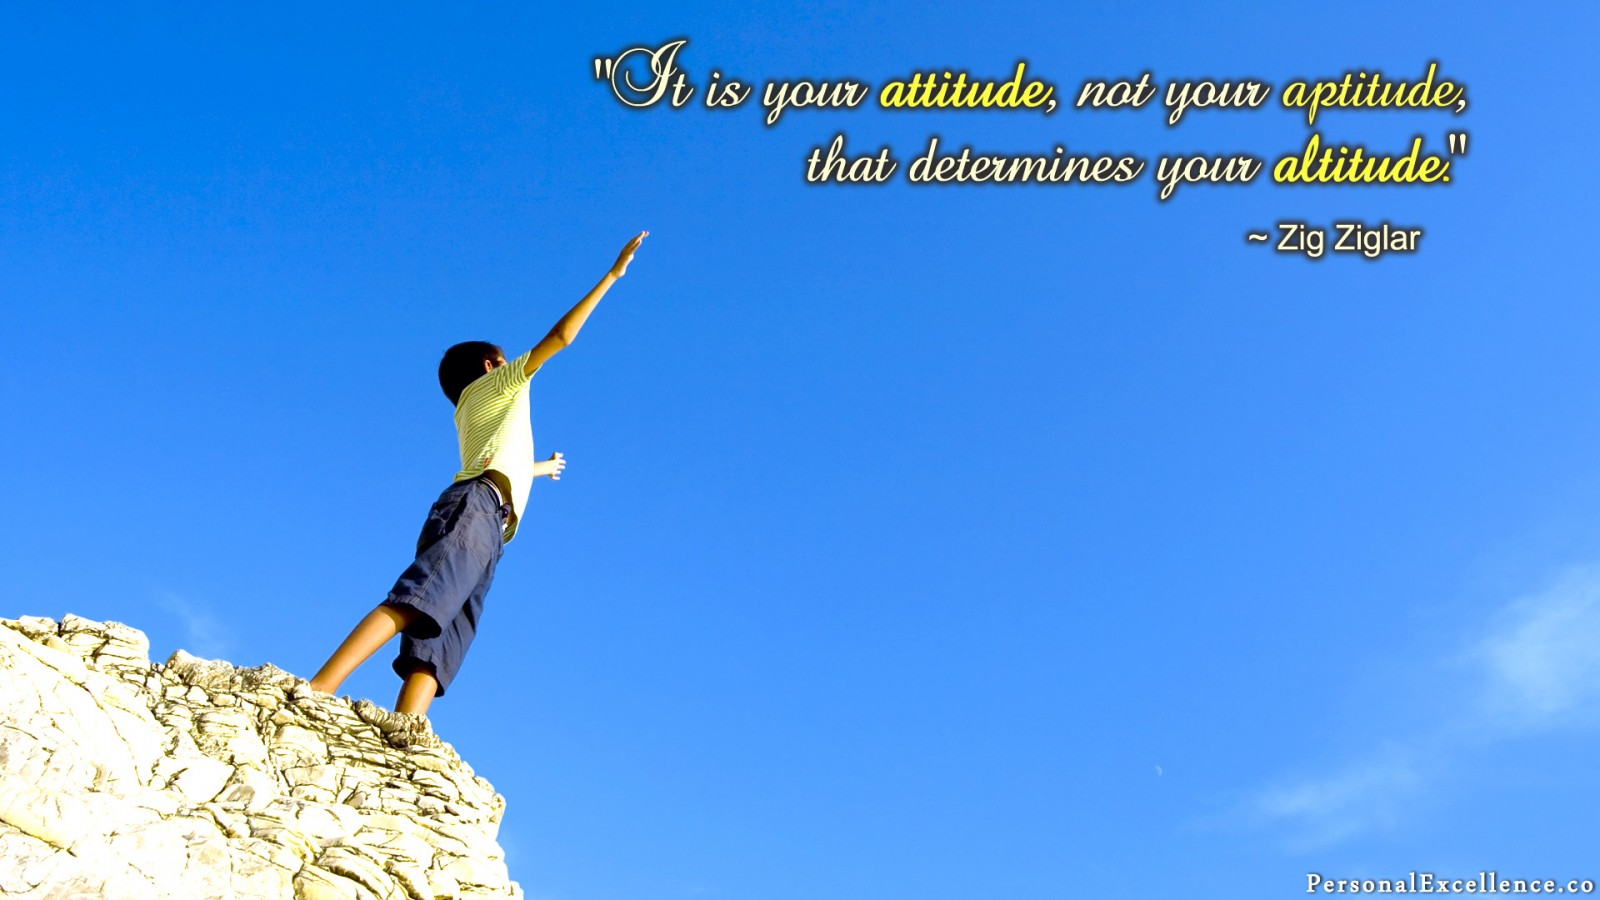 1 Attitude Not Altitude Wallpaper